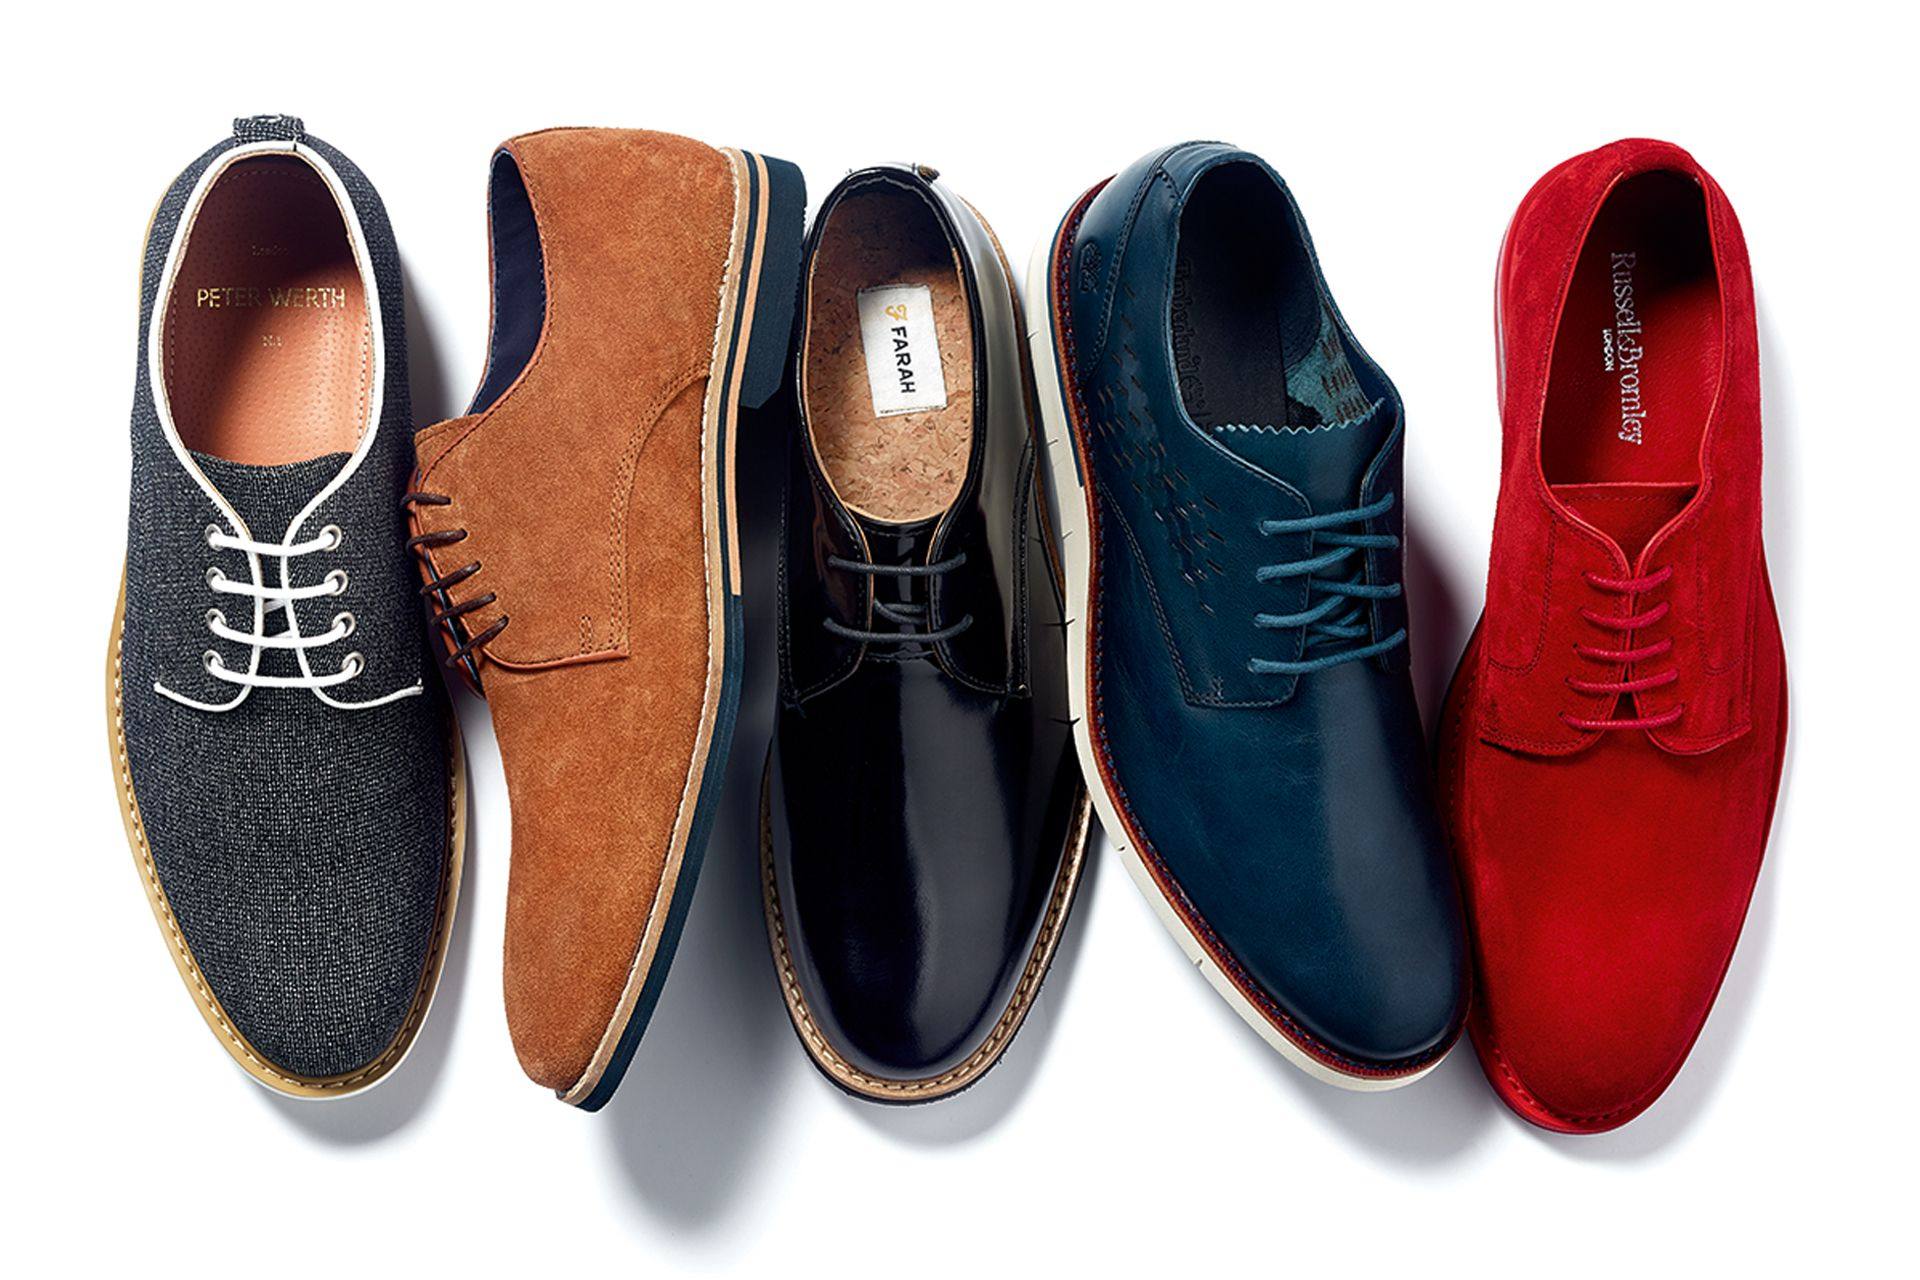 Best Boat Shoes for Men Boat shoes aren't for everyone, so if you're more of a trainer guy, just stick to those. However, boat shoes are some of the most classic pair of shoes that men own during the summer.